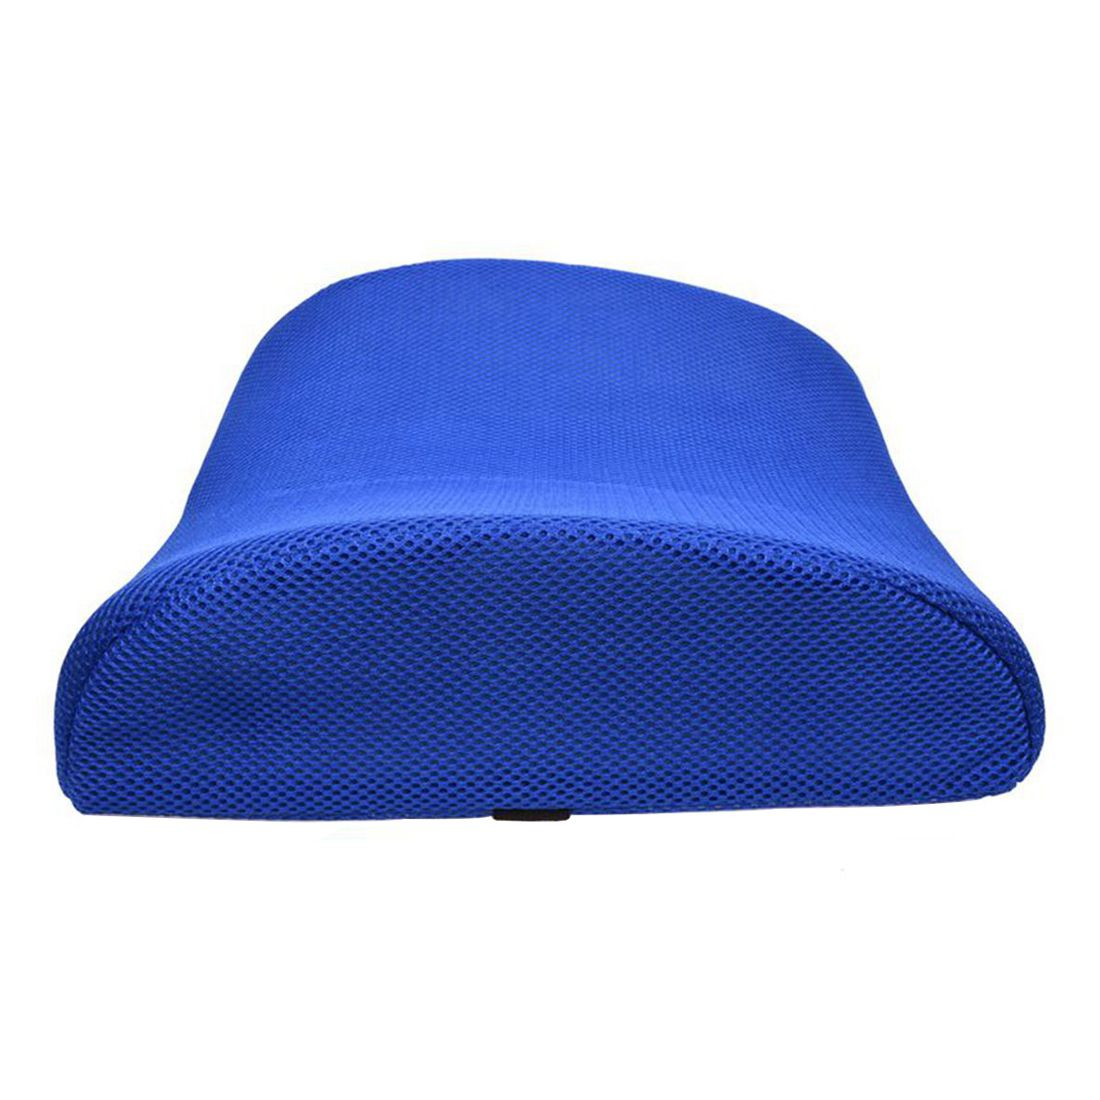 Car Office Home Memory Foam Seat Chair Lumbar Back Support Cushion Pillow New